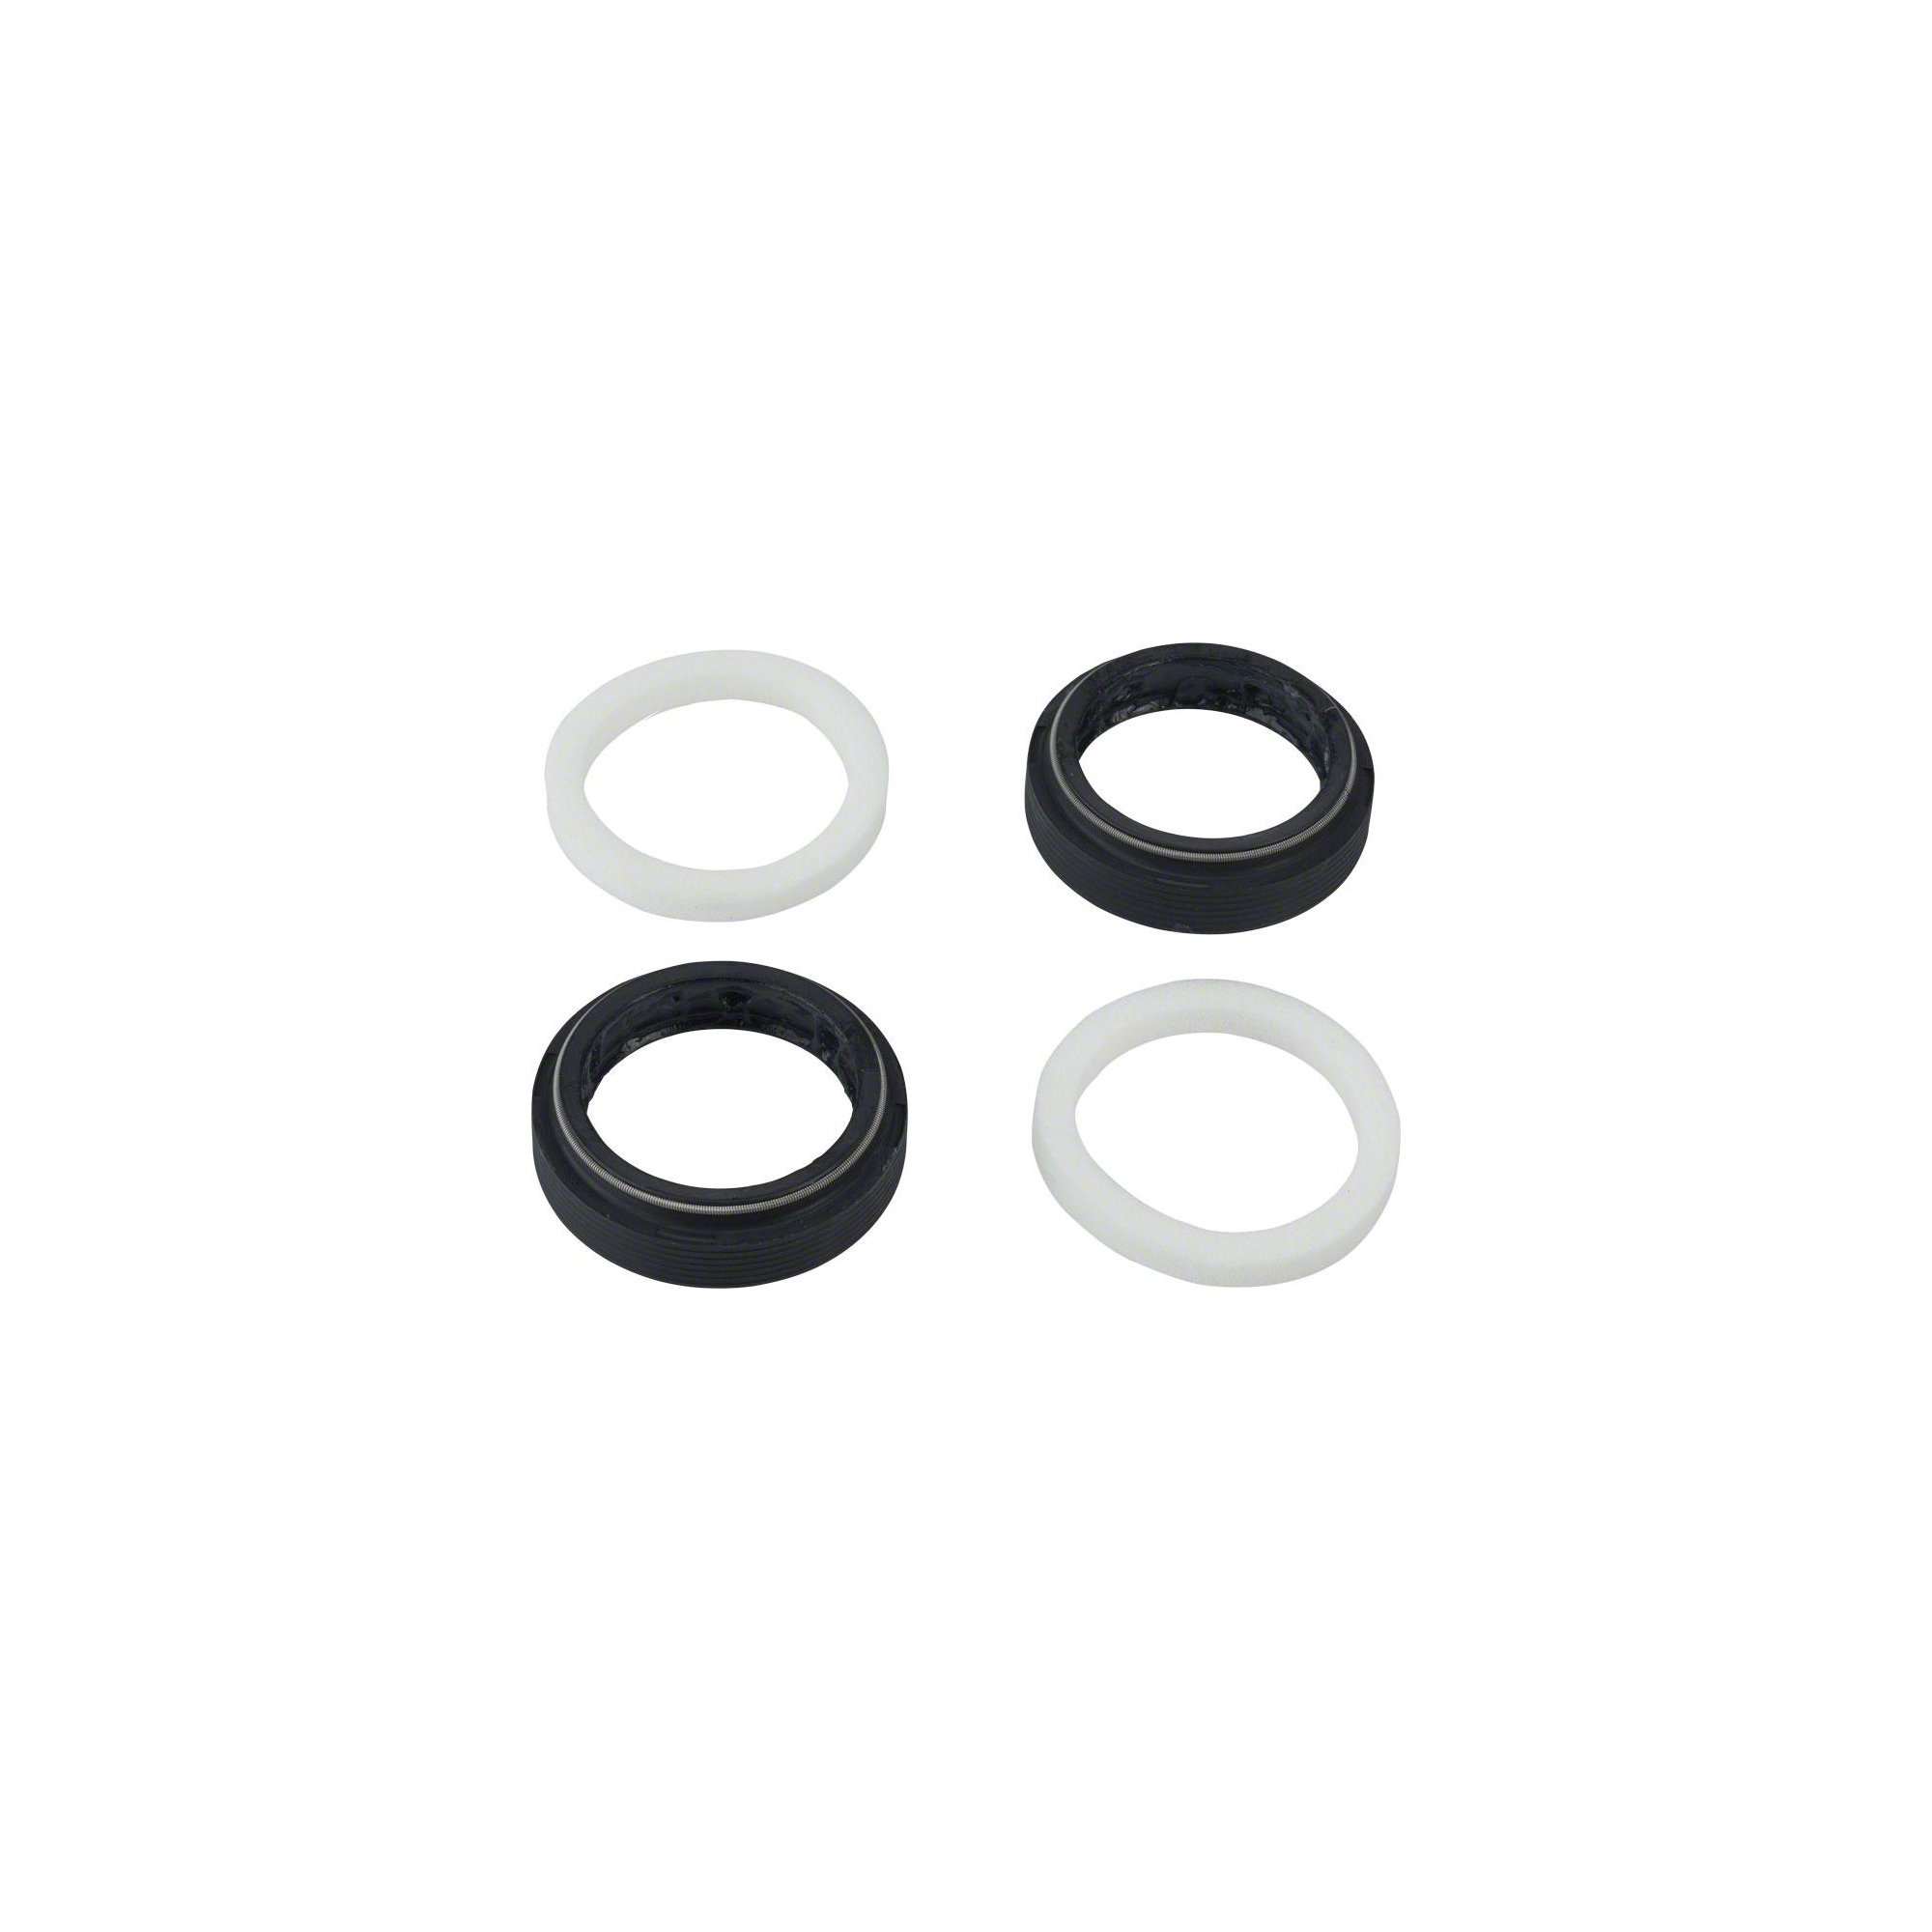 RockShox Dust Seal Kit Black, 35mm SKF for Pike/Lyrik B1/Yari/BoXXer